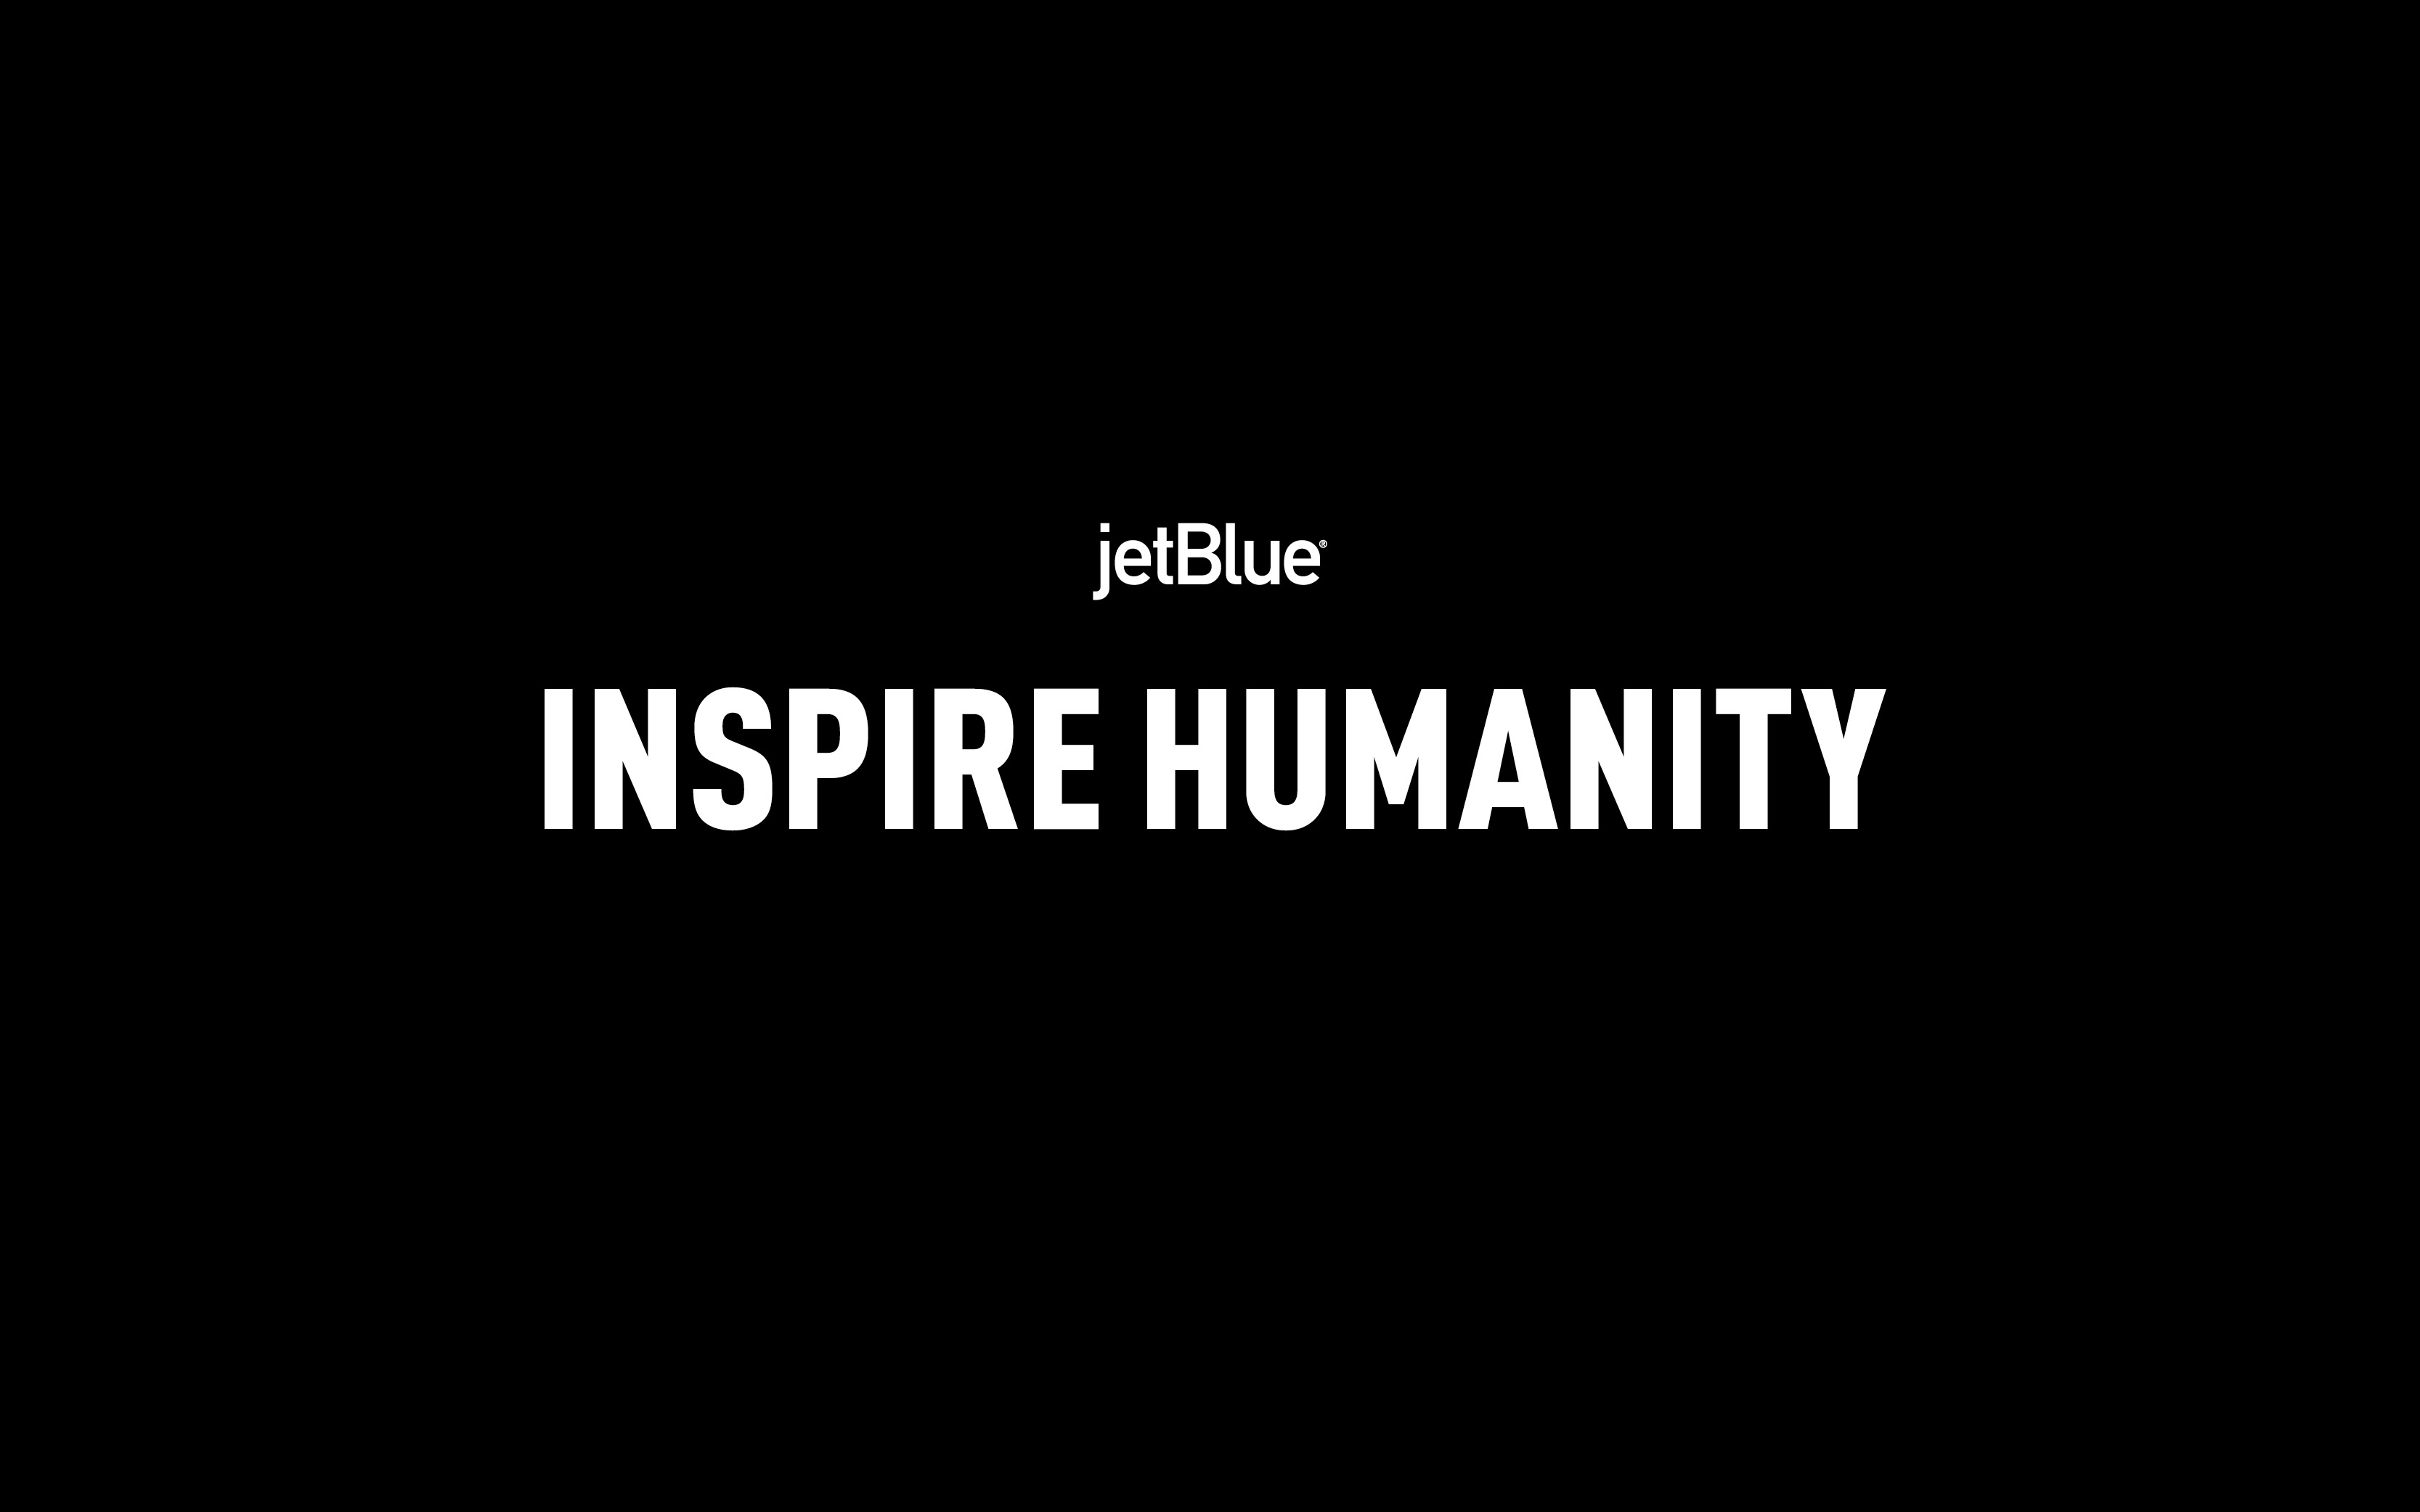 Inspire Humanity